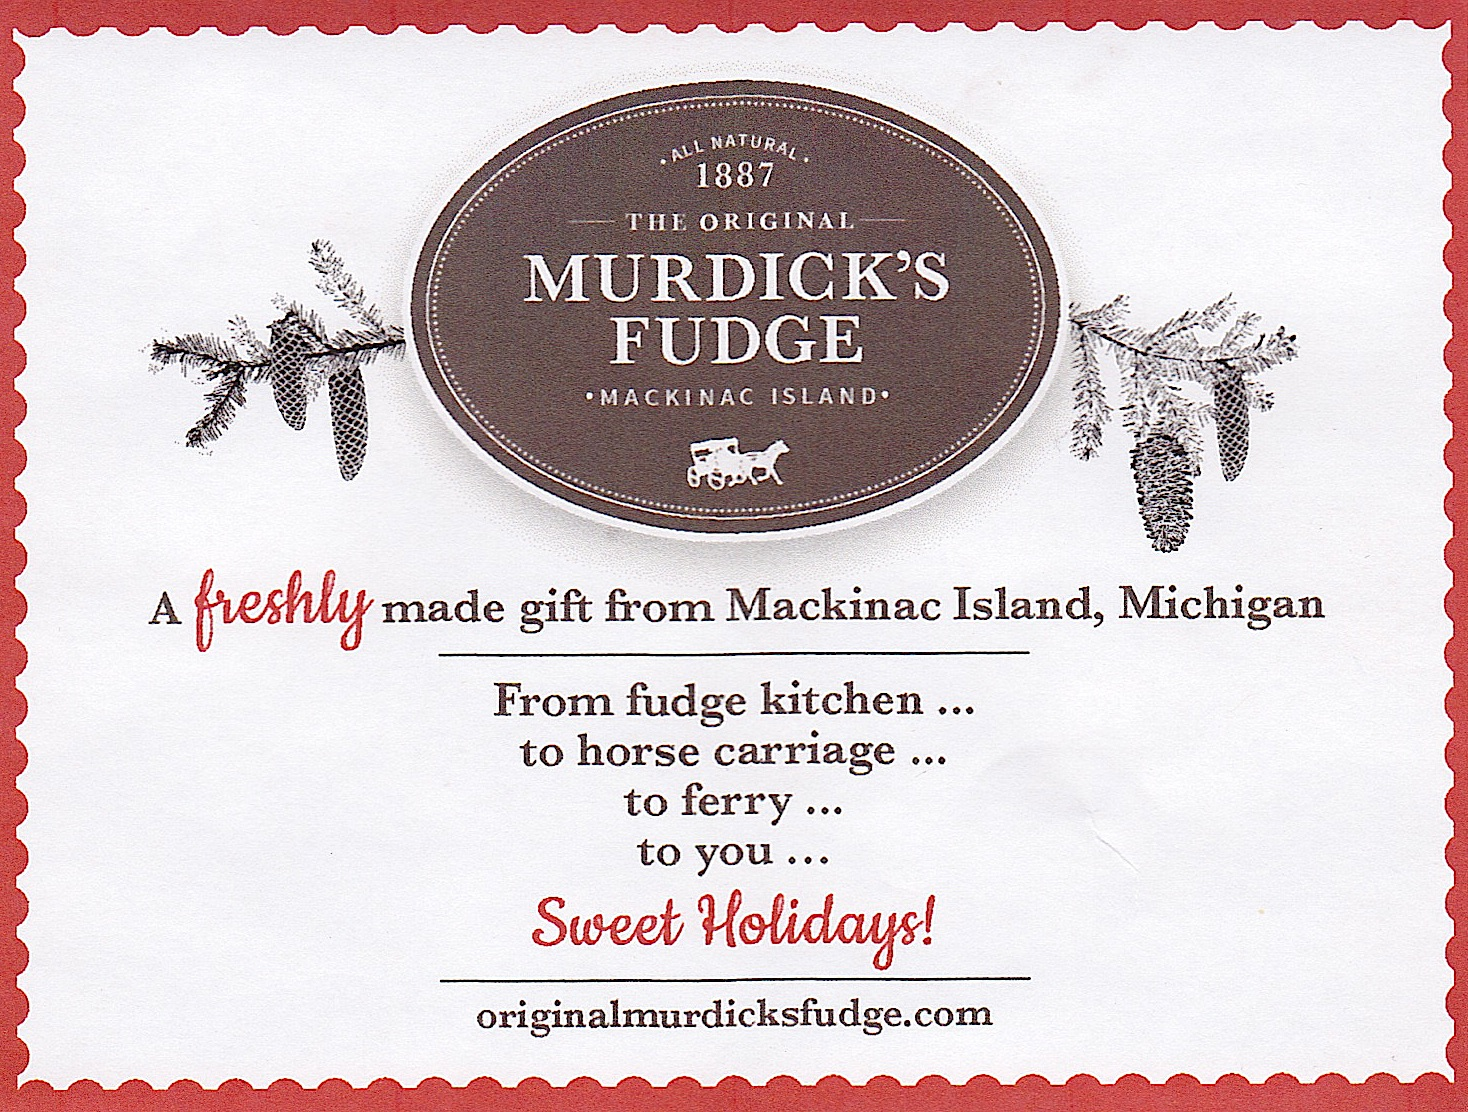 Our Gift Box 'Experience' Treats You To Pure Michigan Tradition ...